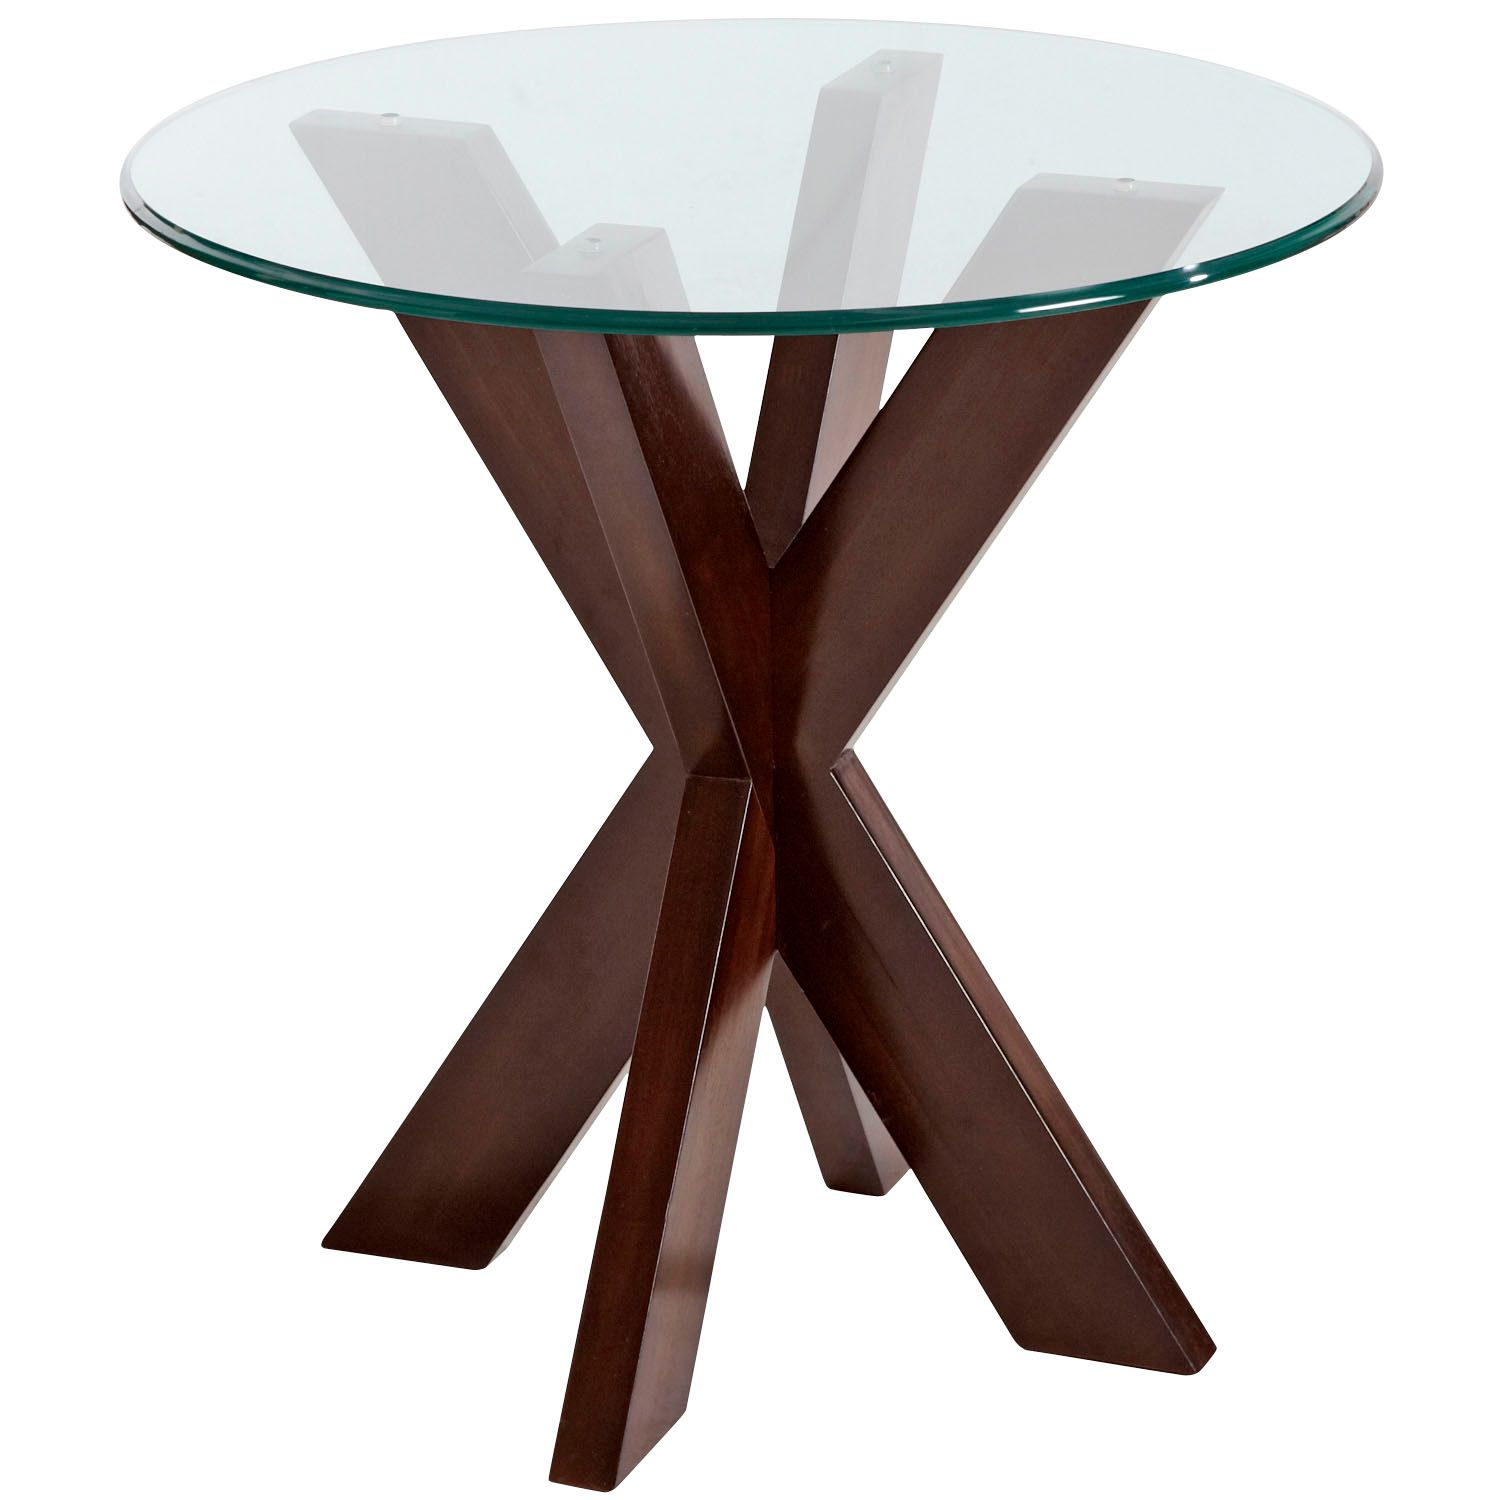 simon espresso end table base pier imports accent tables collection small green side barn door designs rustic wine rack dining placemats bedside legs fruit cocktail recipe bar